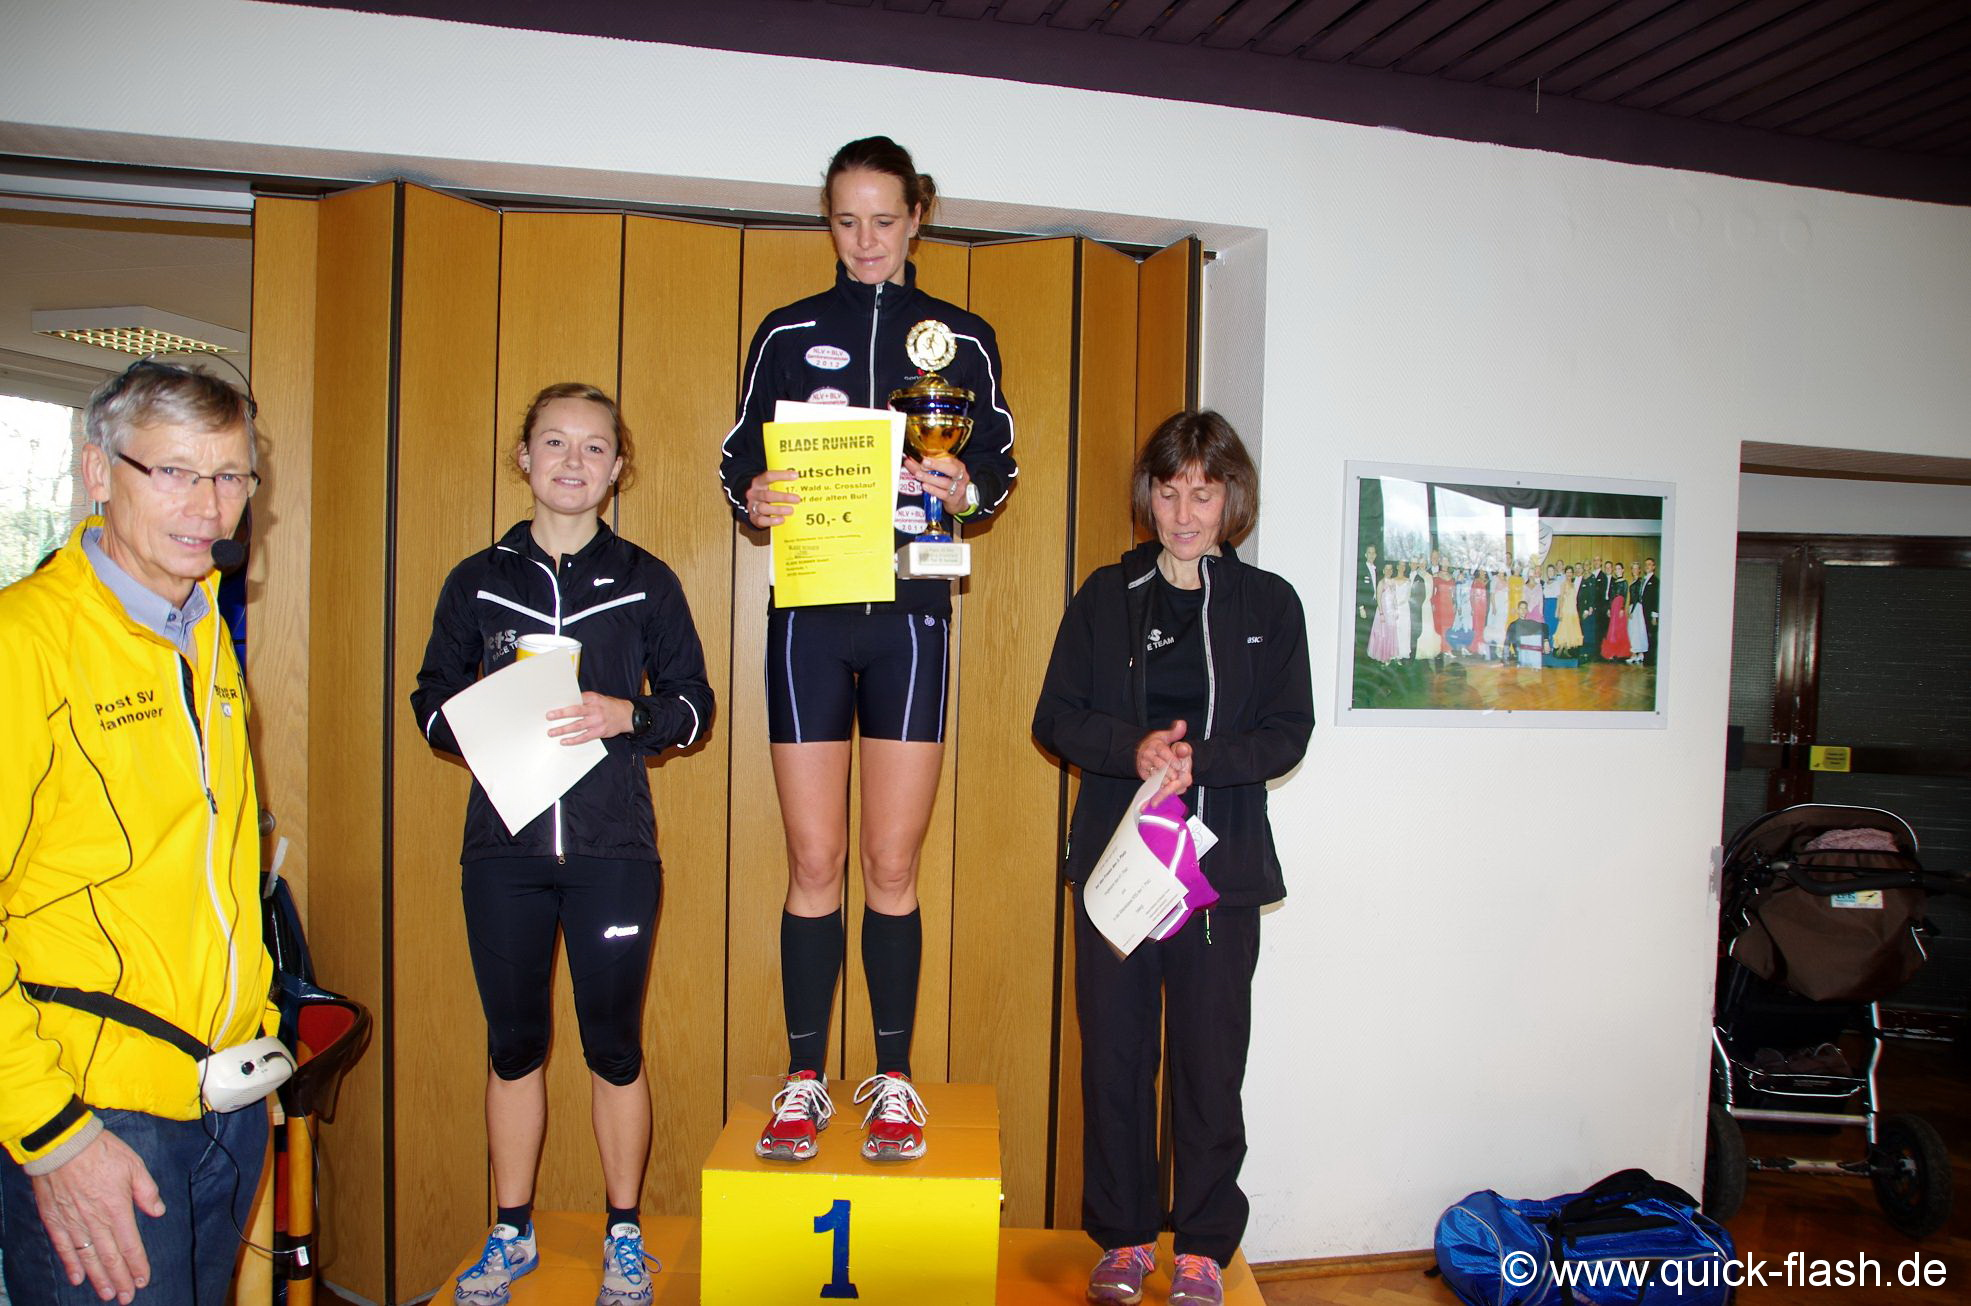 top3_frauen_bult2013.JPG